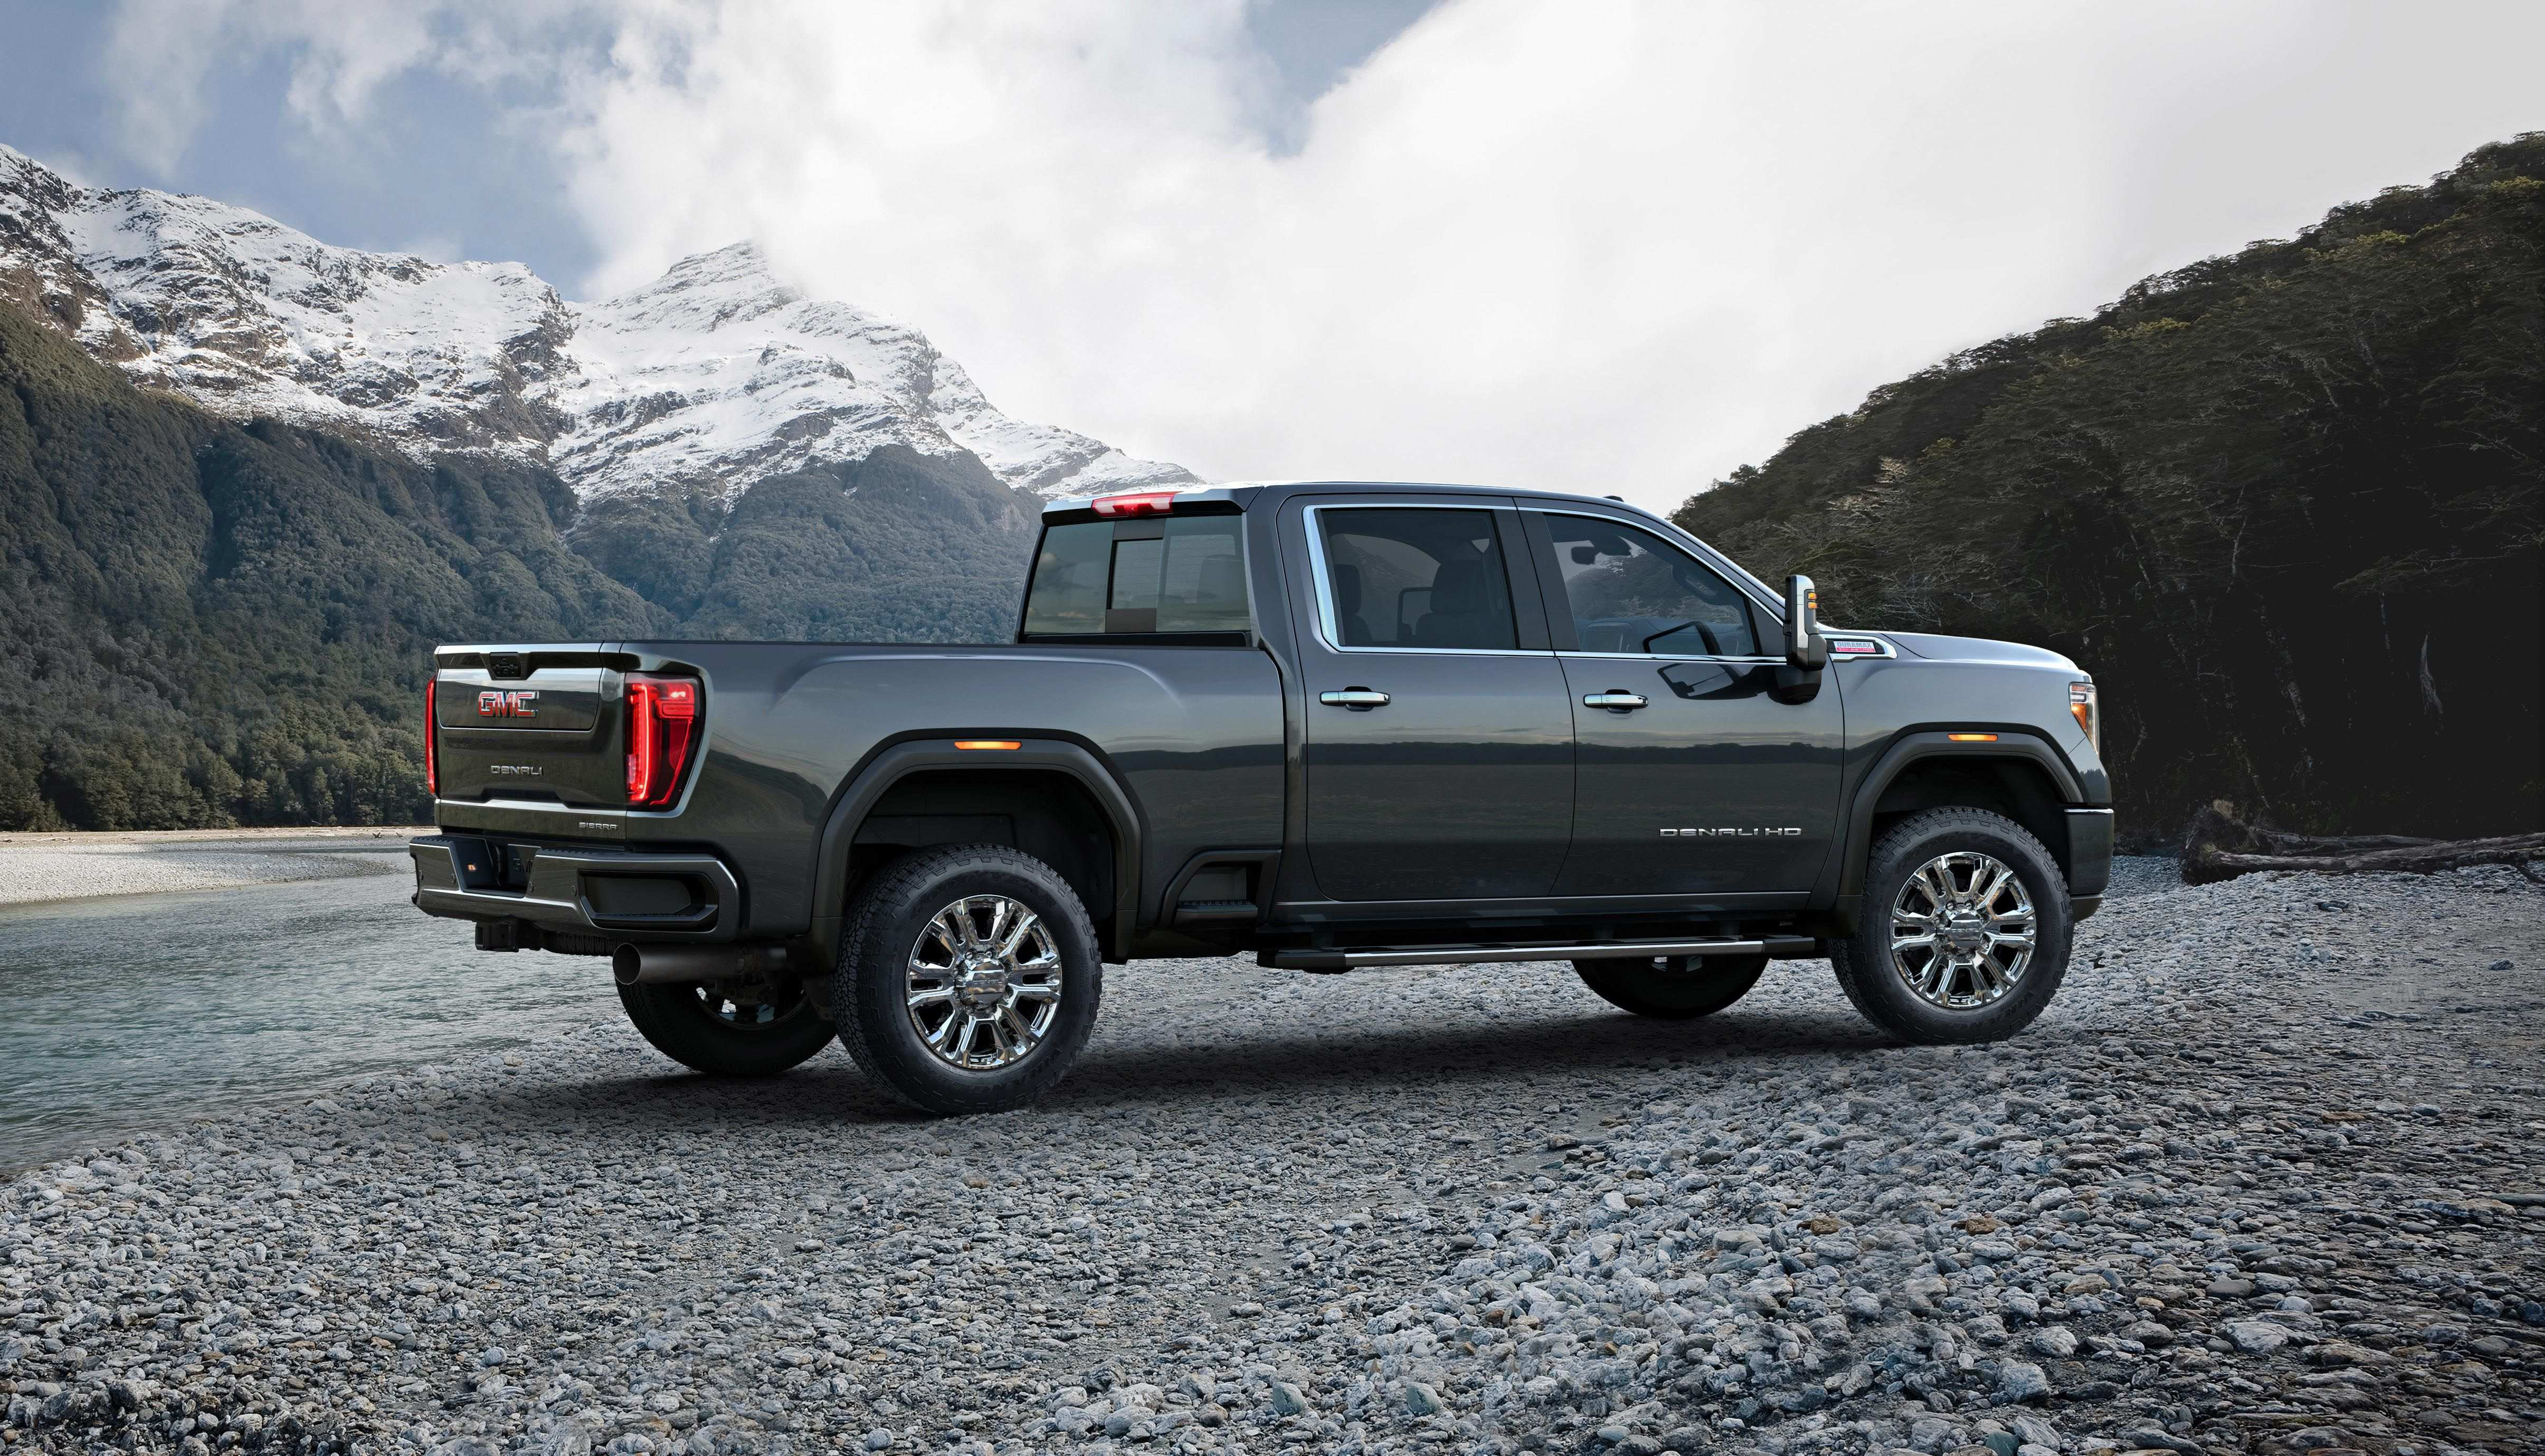 84 Best 2020 GMC Sierra 1500 Diesel Ratings